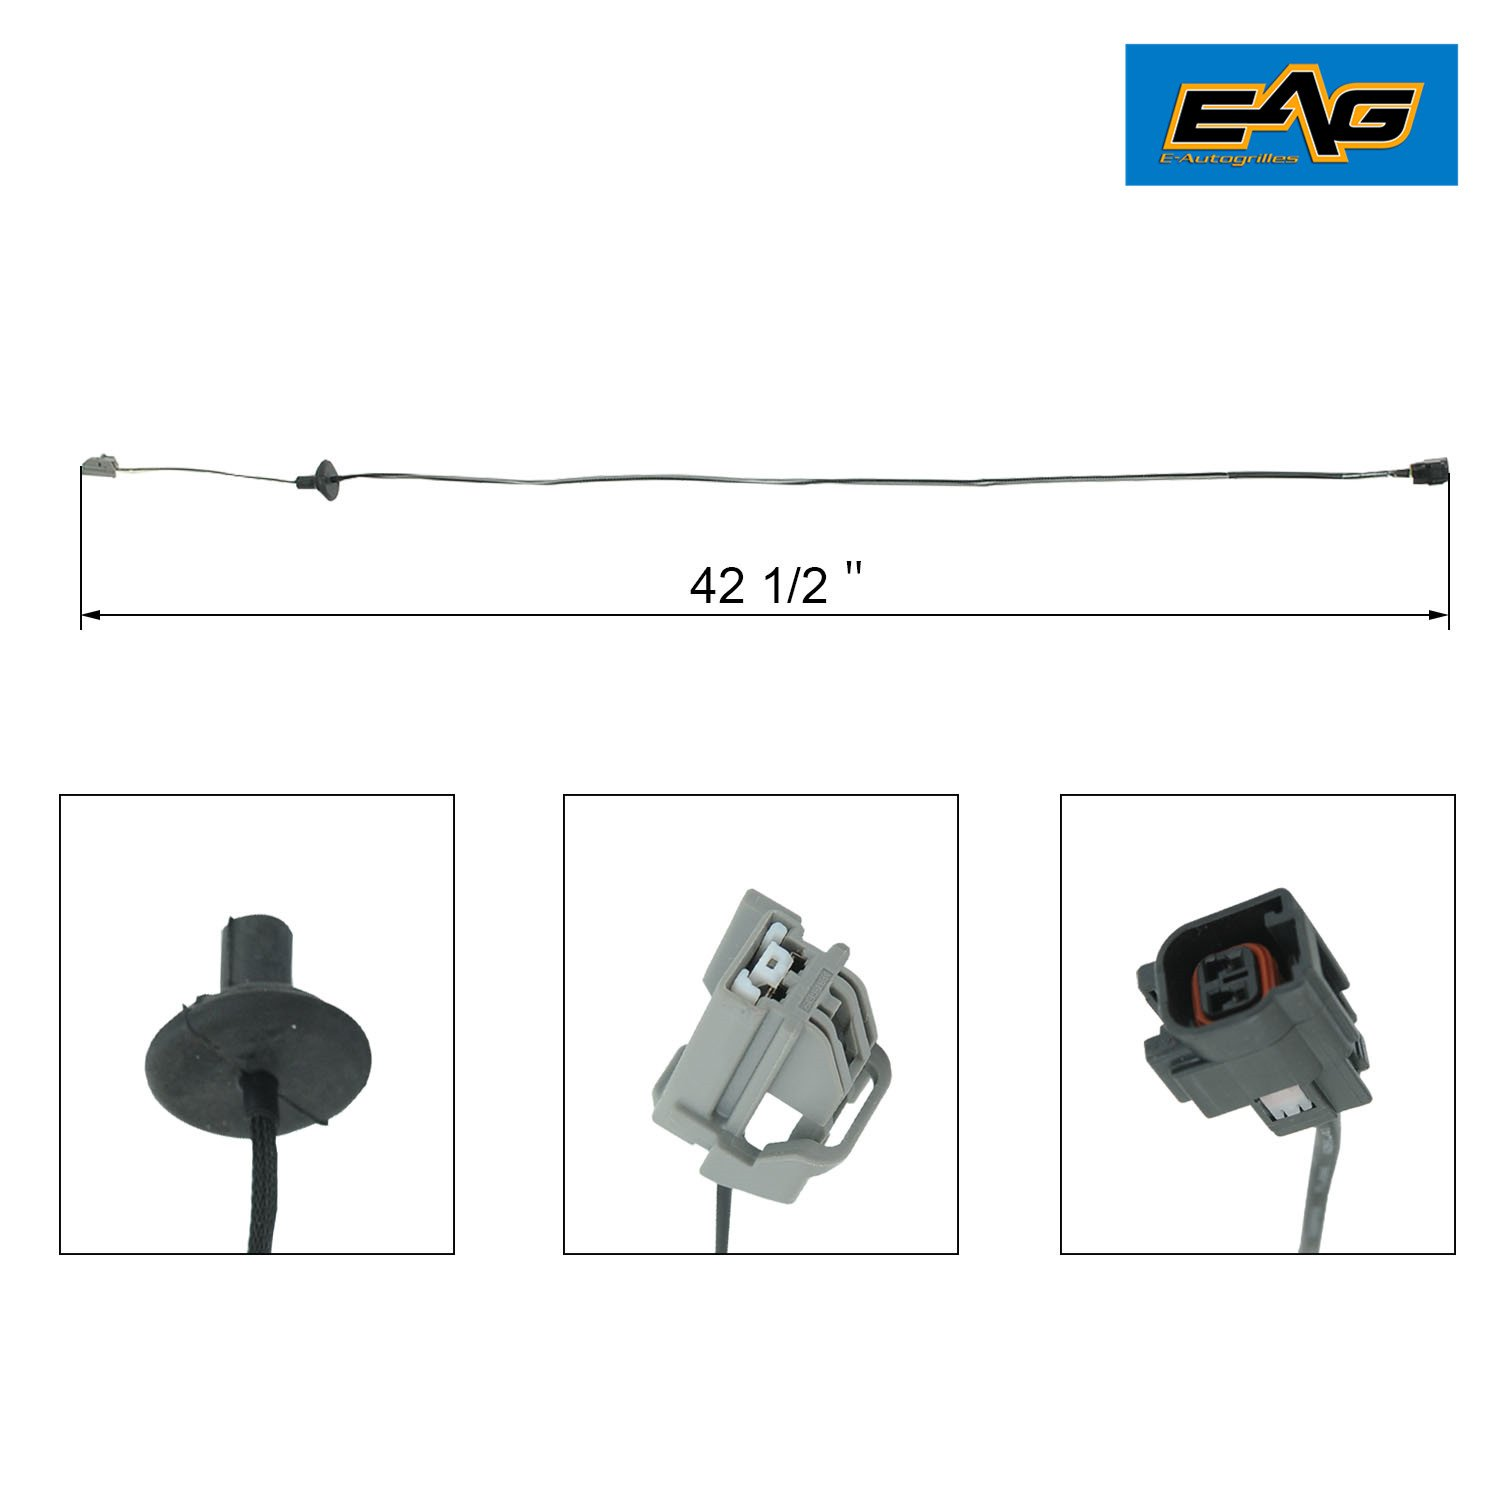 "Amazon.com: EAG 07-18 Jeep Wrangler JK 42.5"" Third Brake Light Extension  Wire Harness - Single: Automotive"